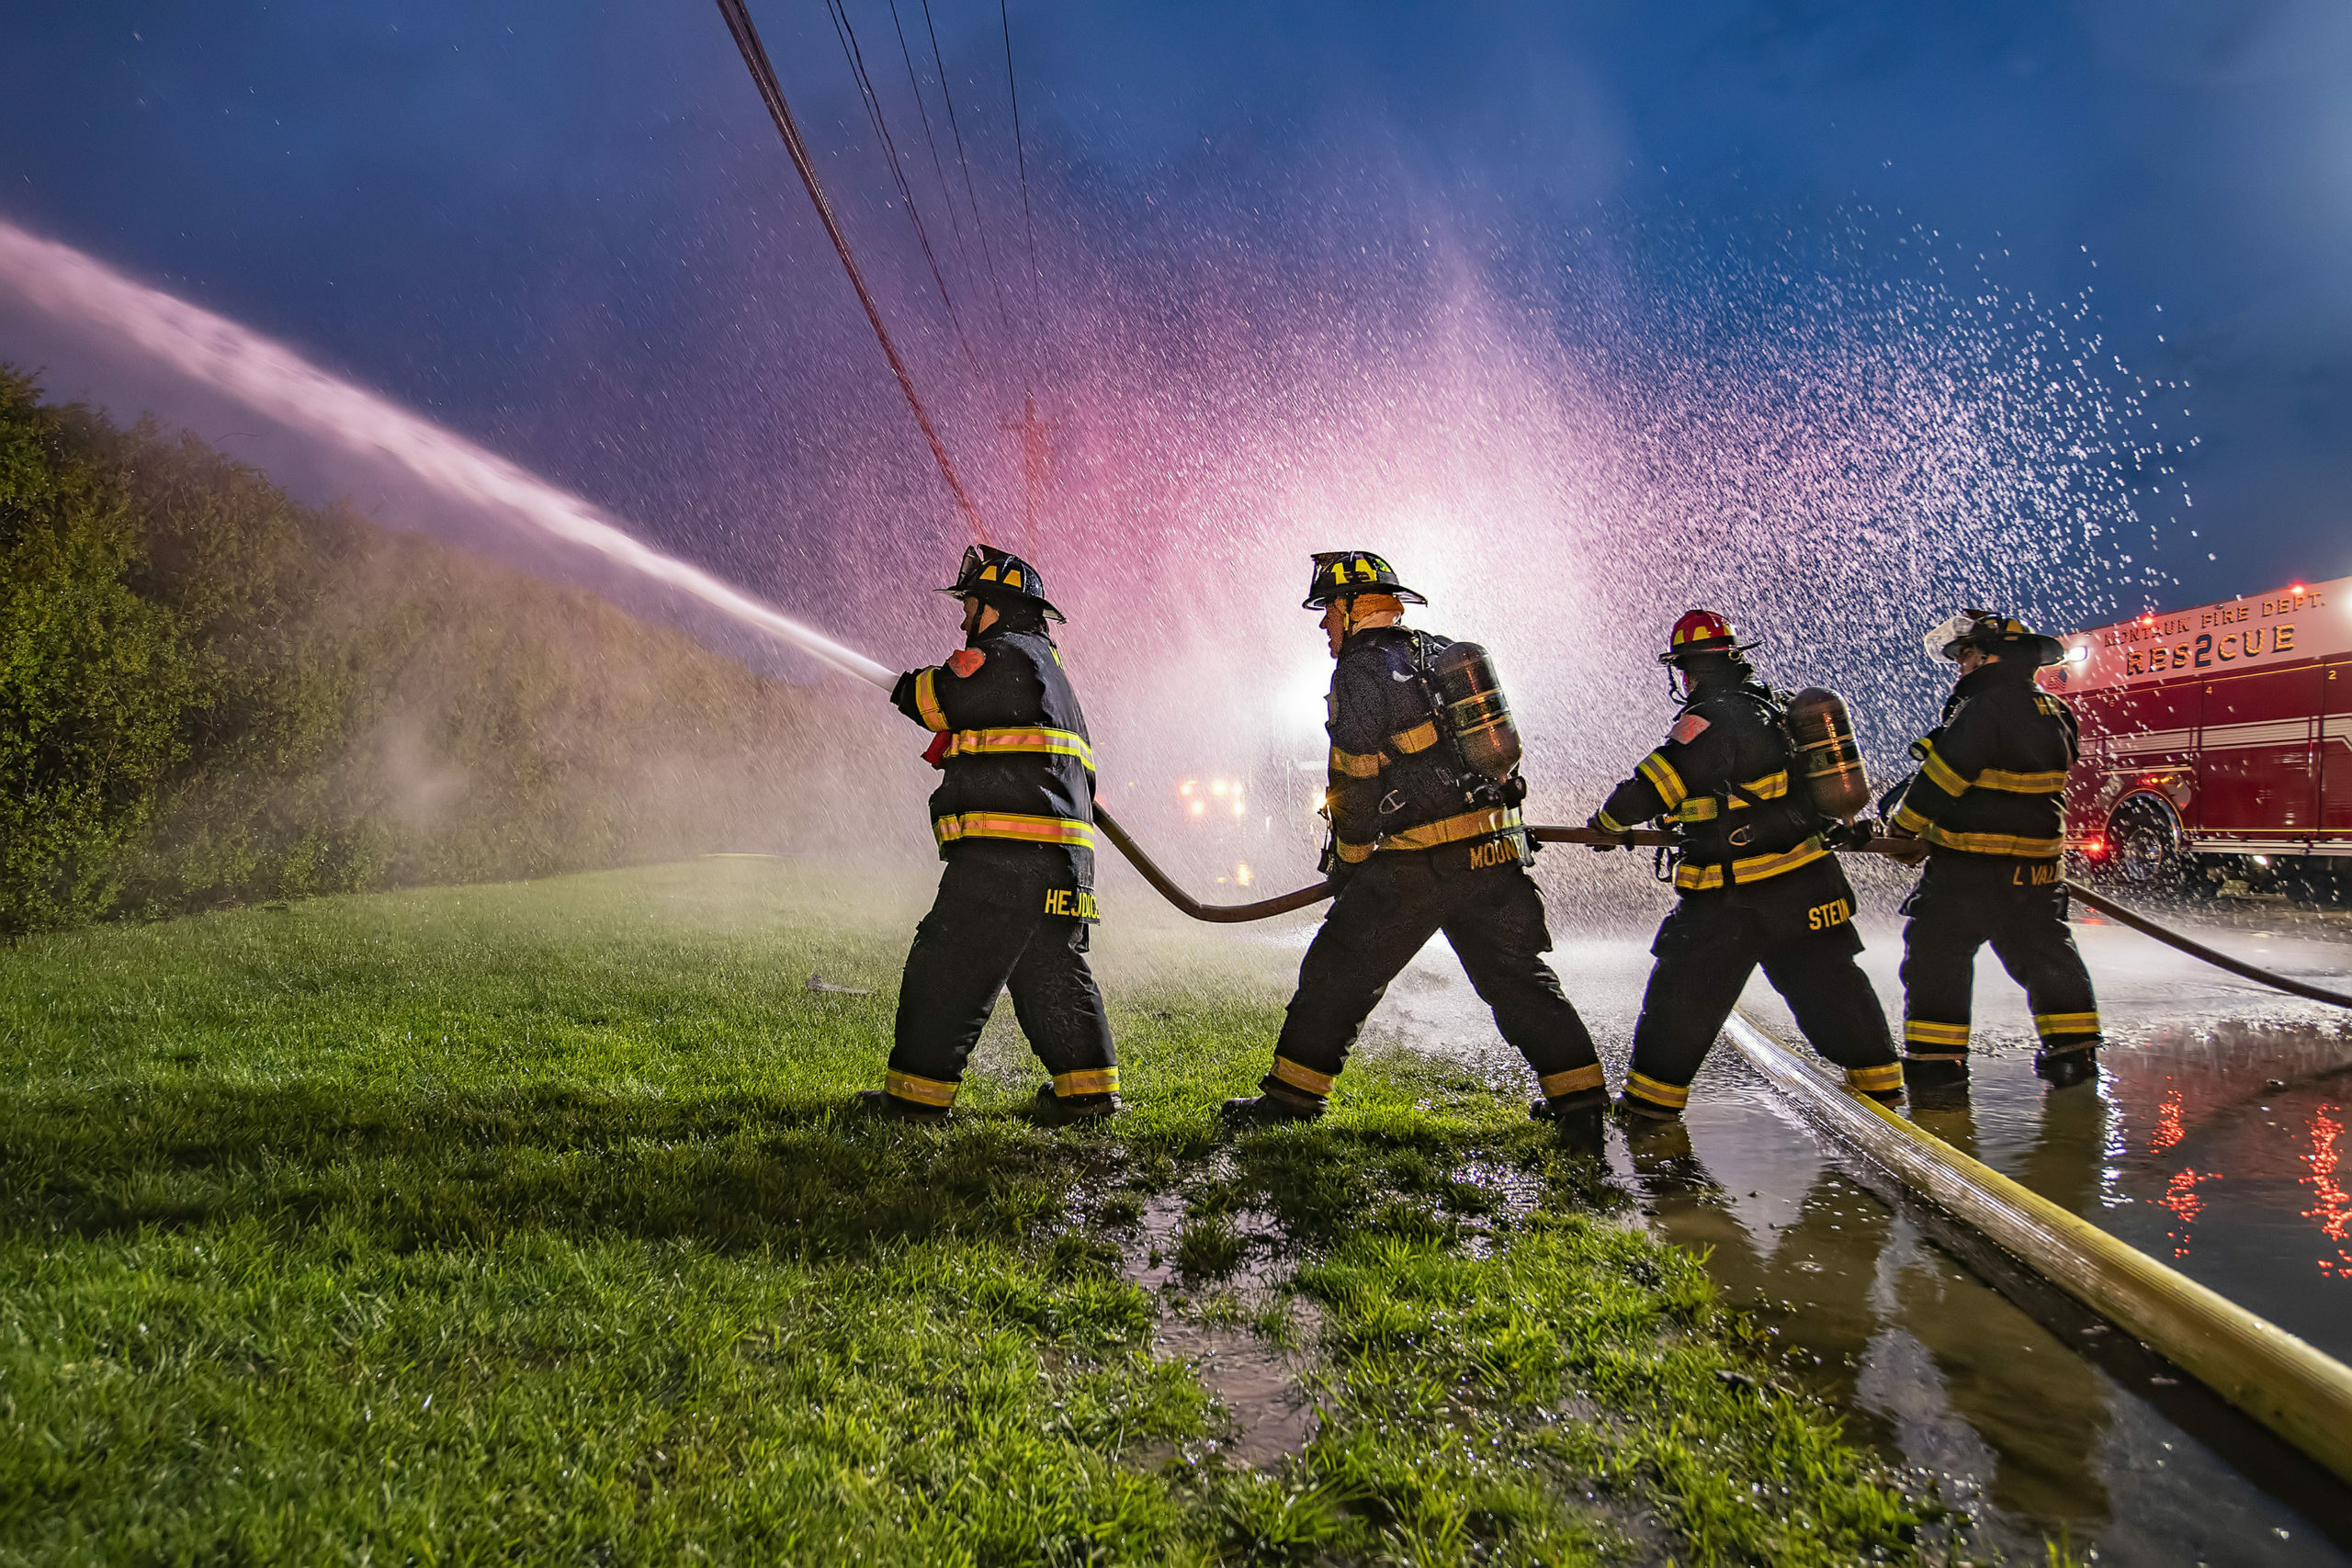 Legislation sponsored by Assemblyman Fred Thiele designed  to ensure volunteer firefighters, like those who fought a recent blaze at the Atlantic Bluffs Condominium complex in Montauk, can get length of service credit during the pandemic response has passed. MICHAEL HELLER